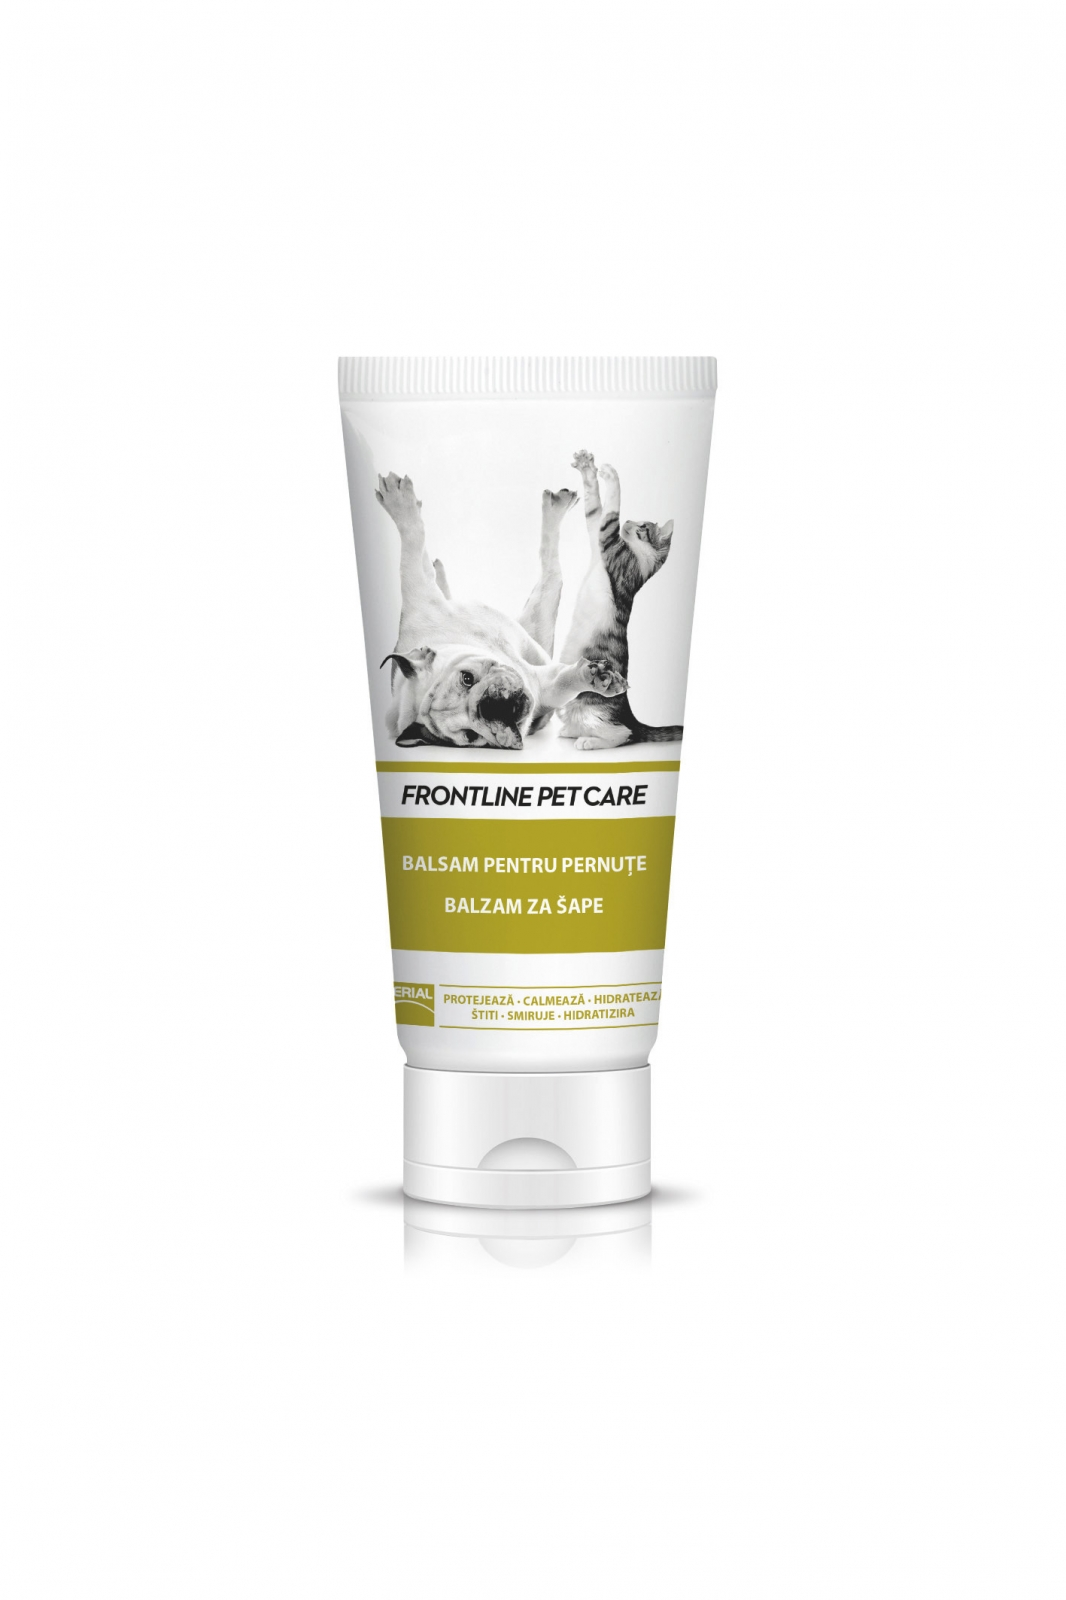 Frontline Pet Care, Gel Pentru Pernute, 100 ml